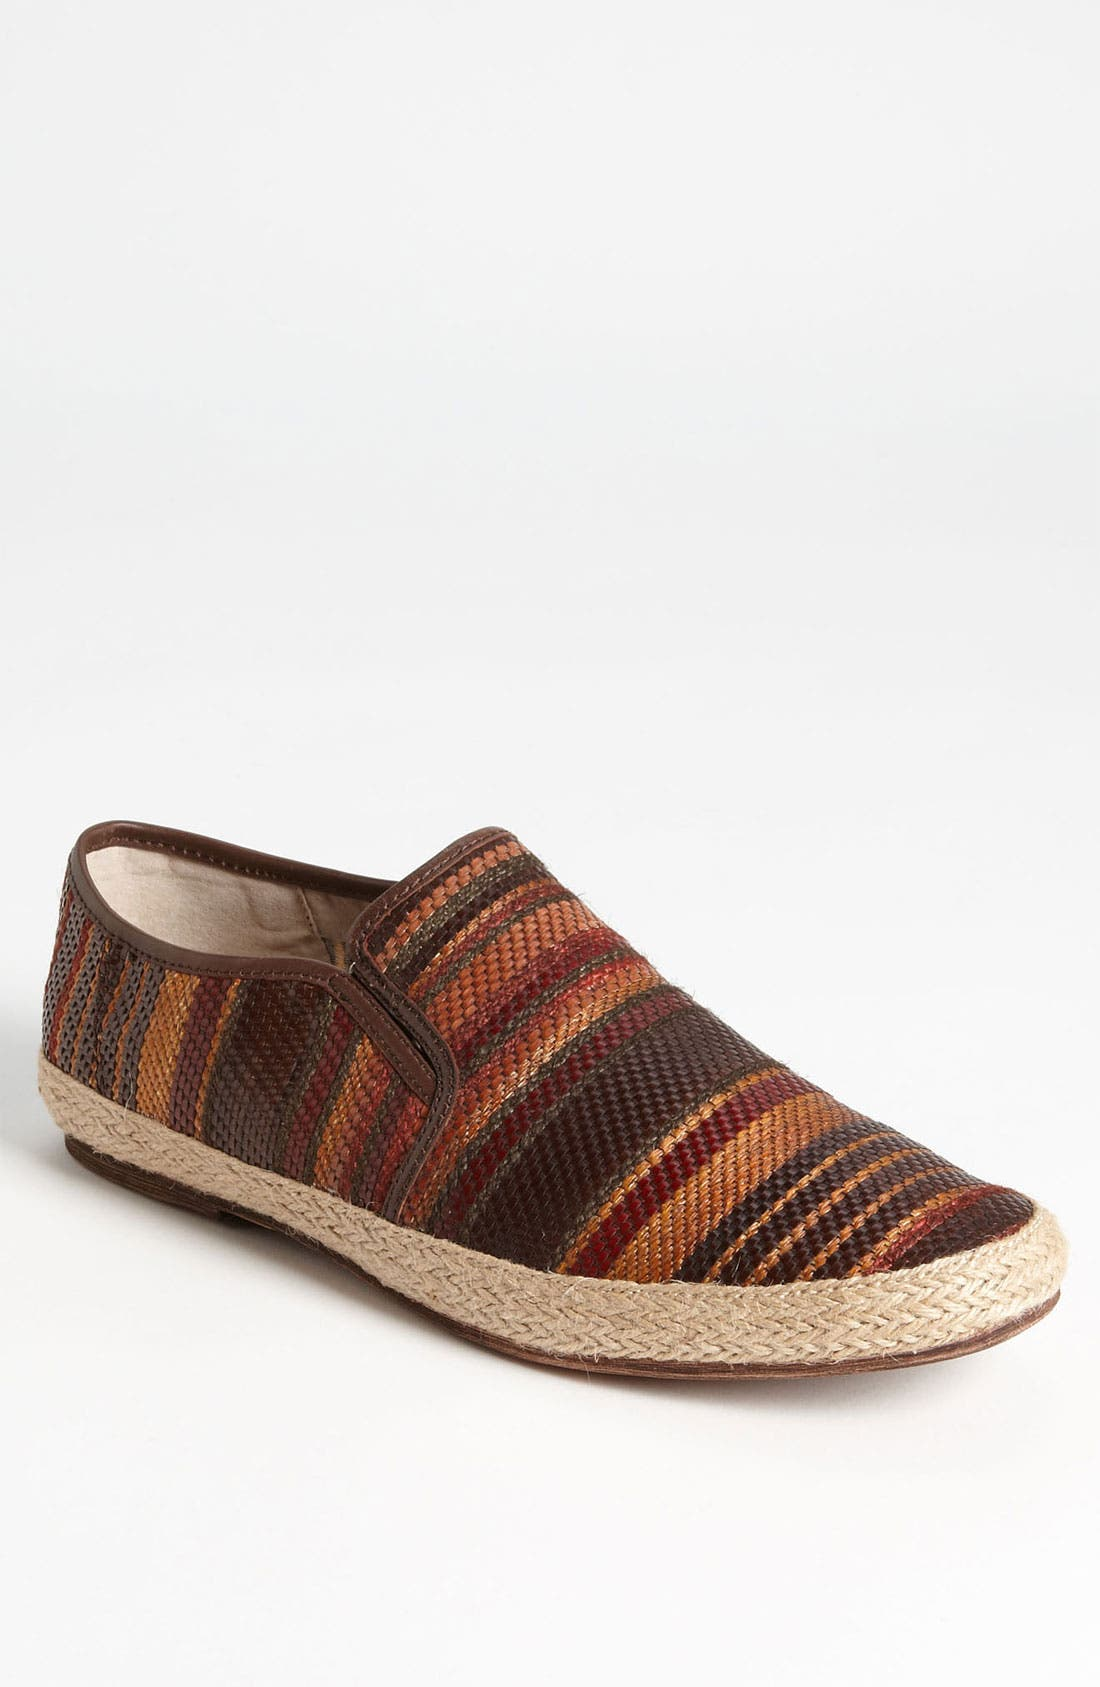 Alternate Image 1 Selected - Kenneth Cole New York 'Got 2 Be-Weave' Slip-On